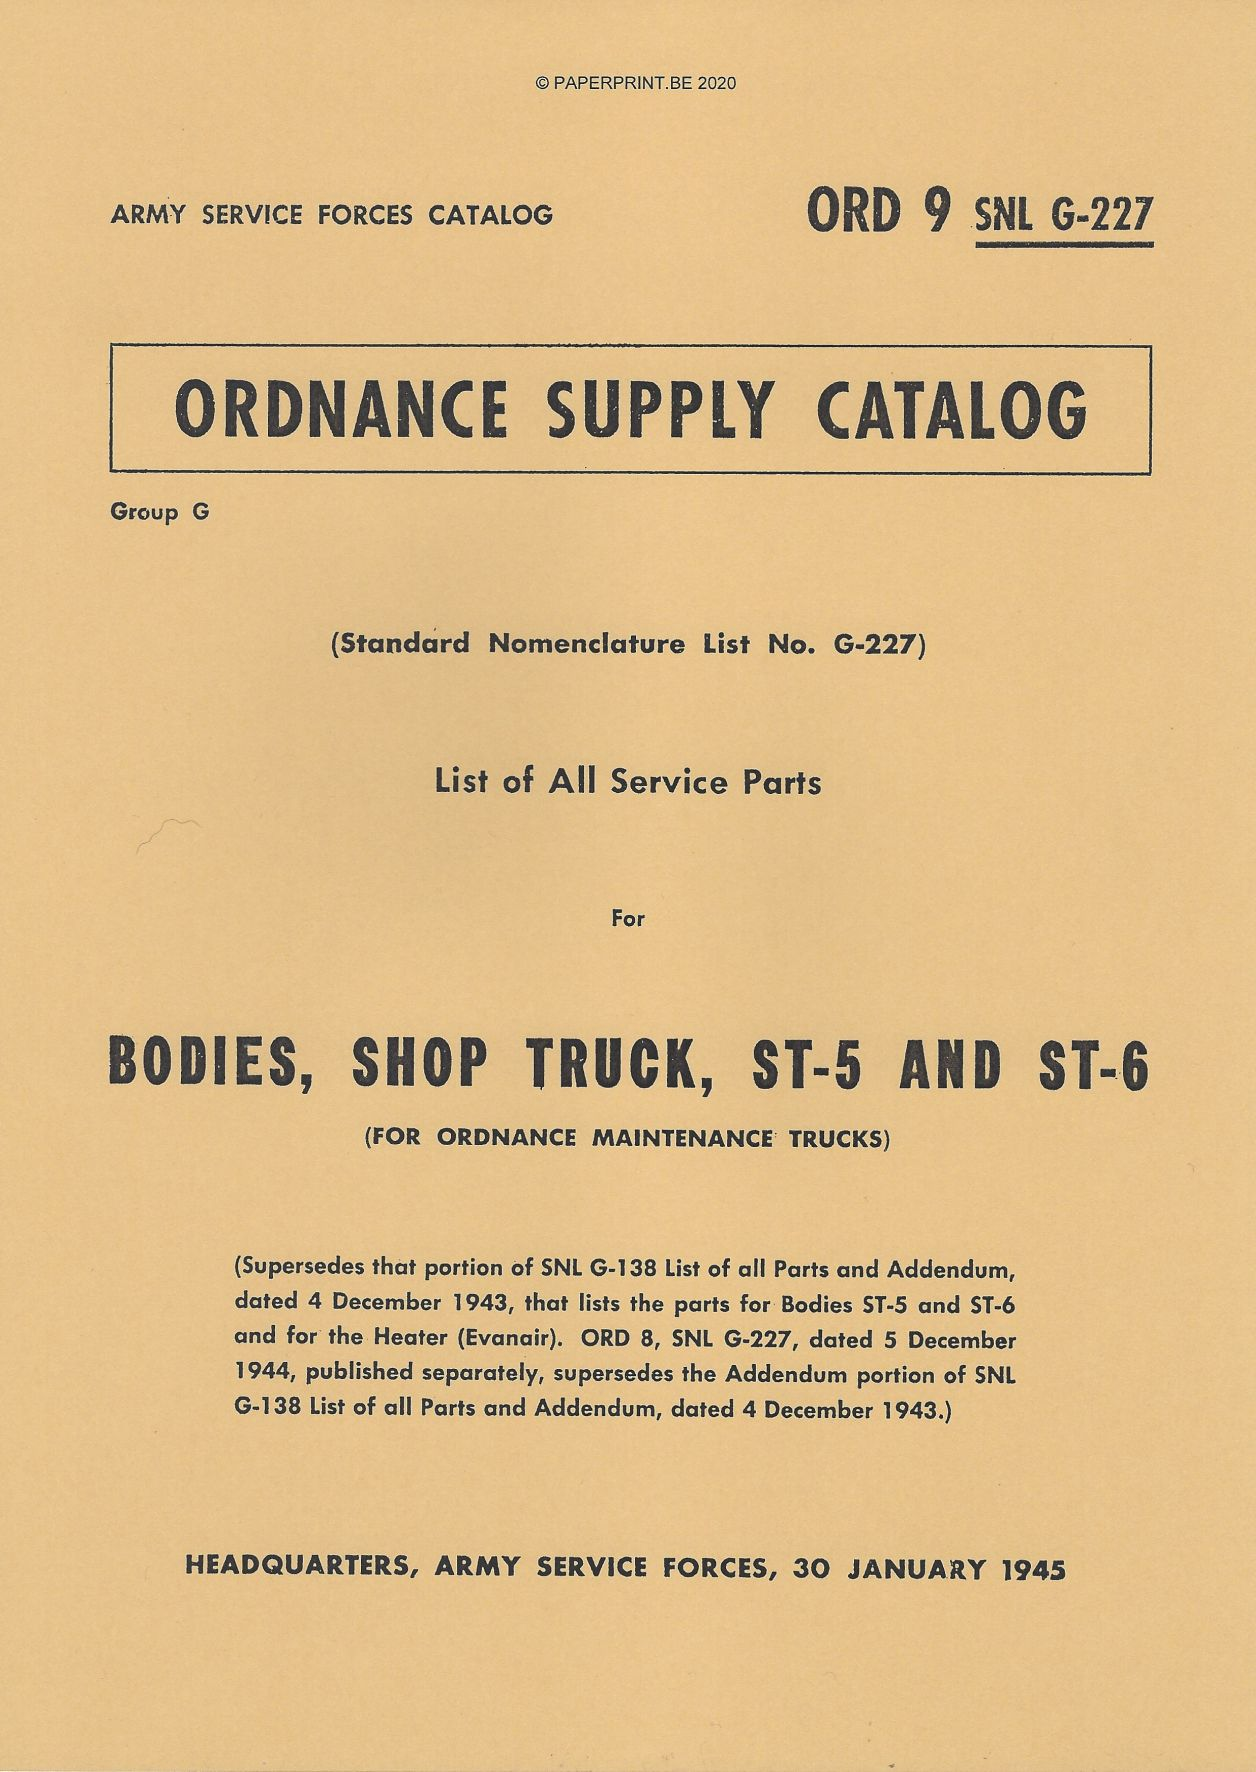 SNL G-227 US BODIES, SHOP TRUCK, ST-5 AND ST-6 PARTS LIST